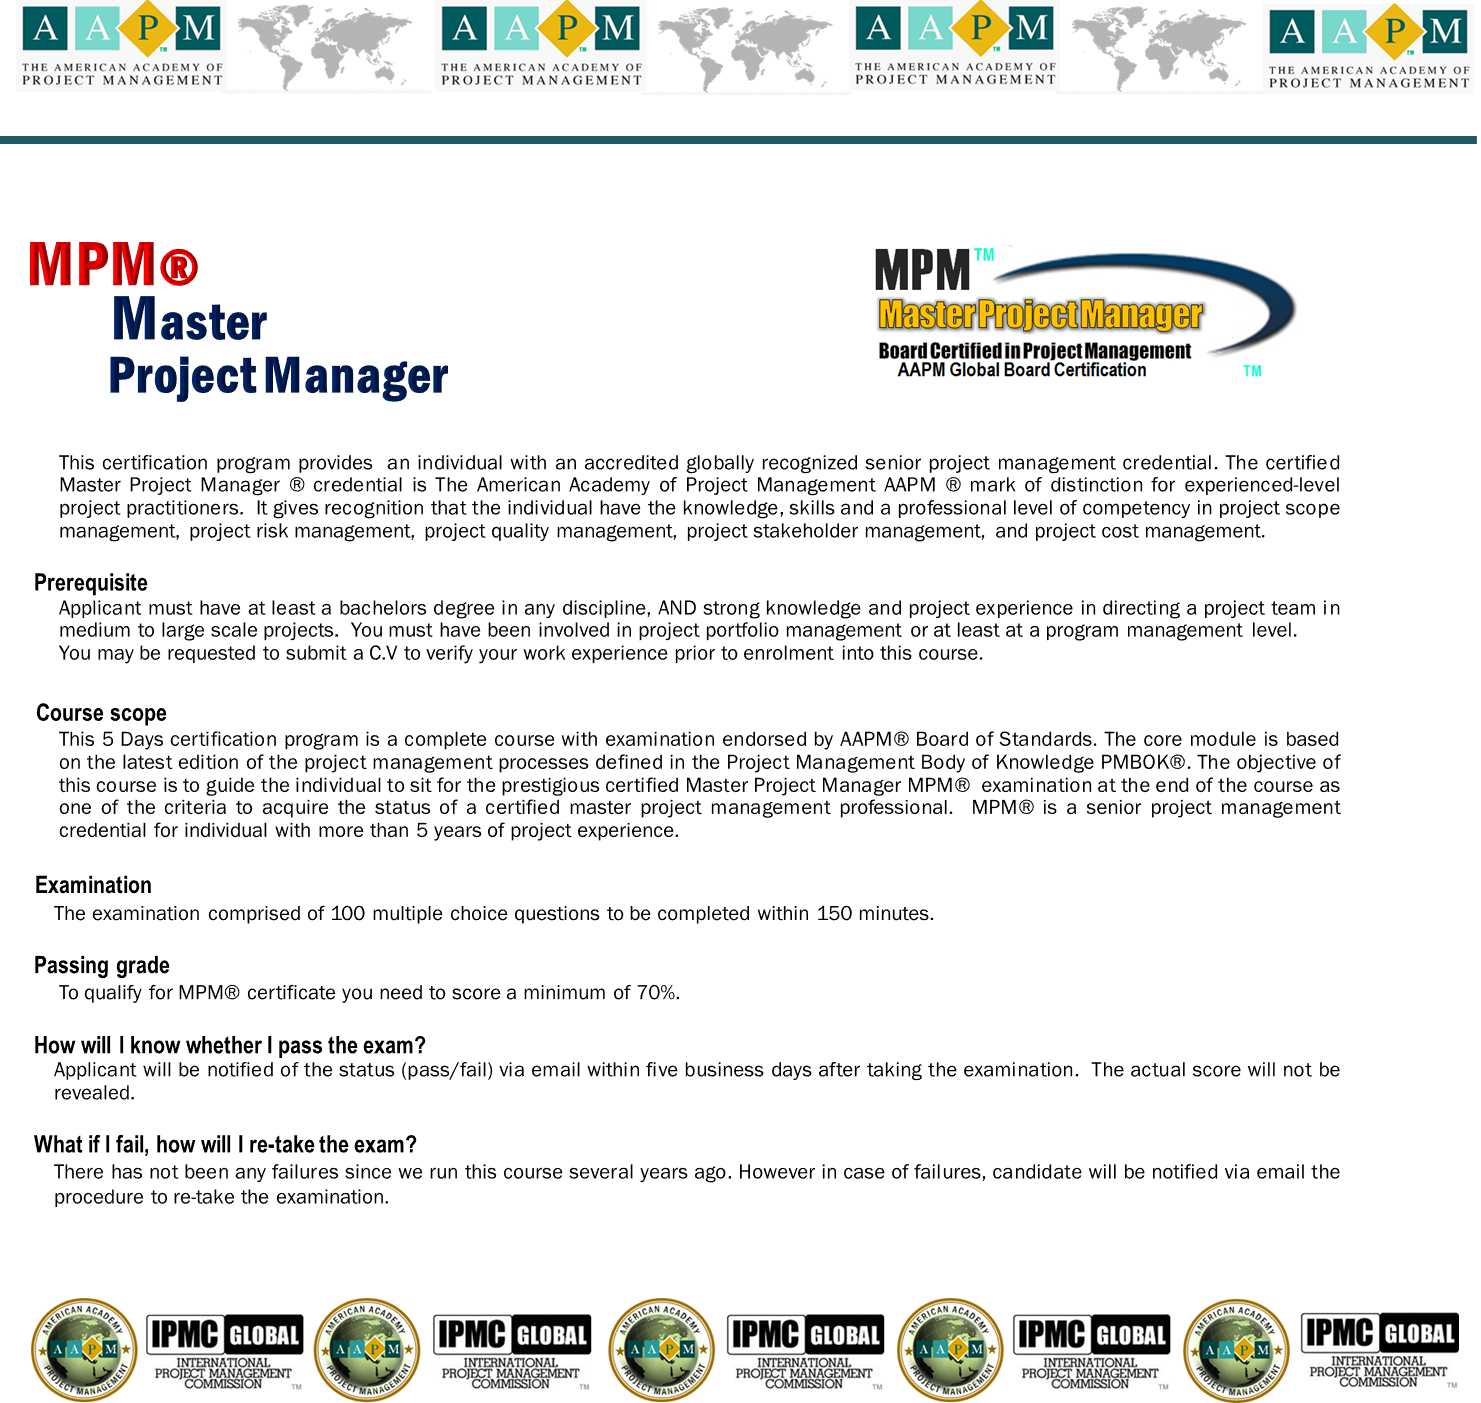 MPM Master Project Manager